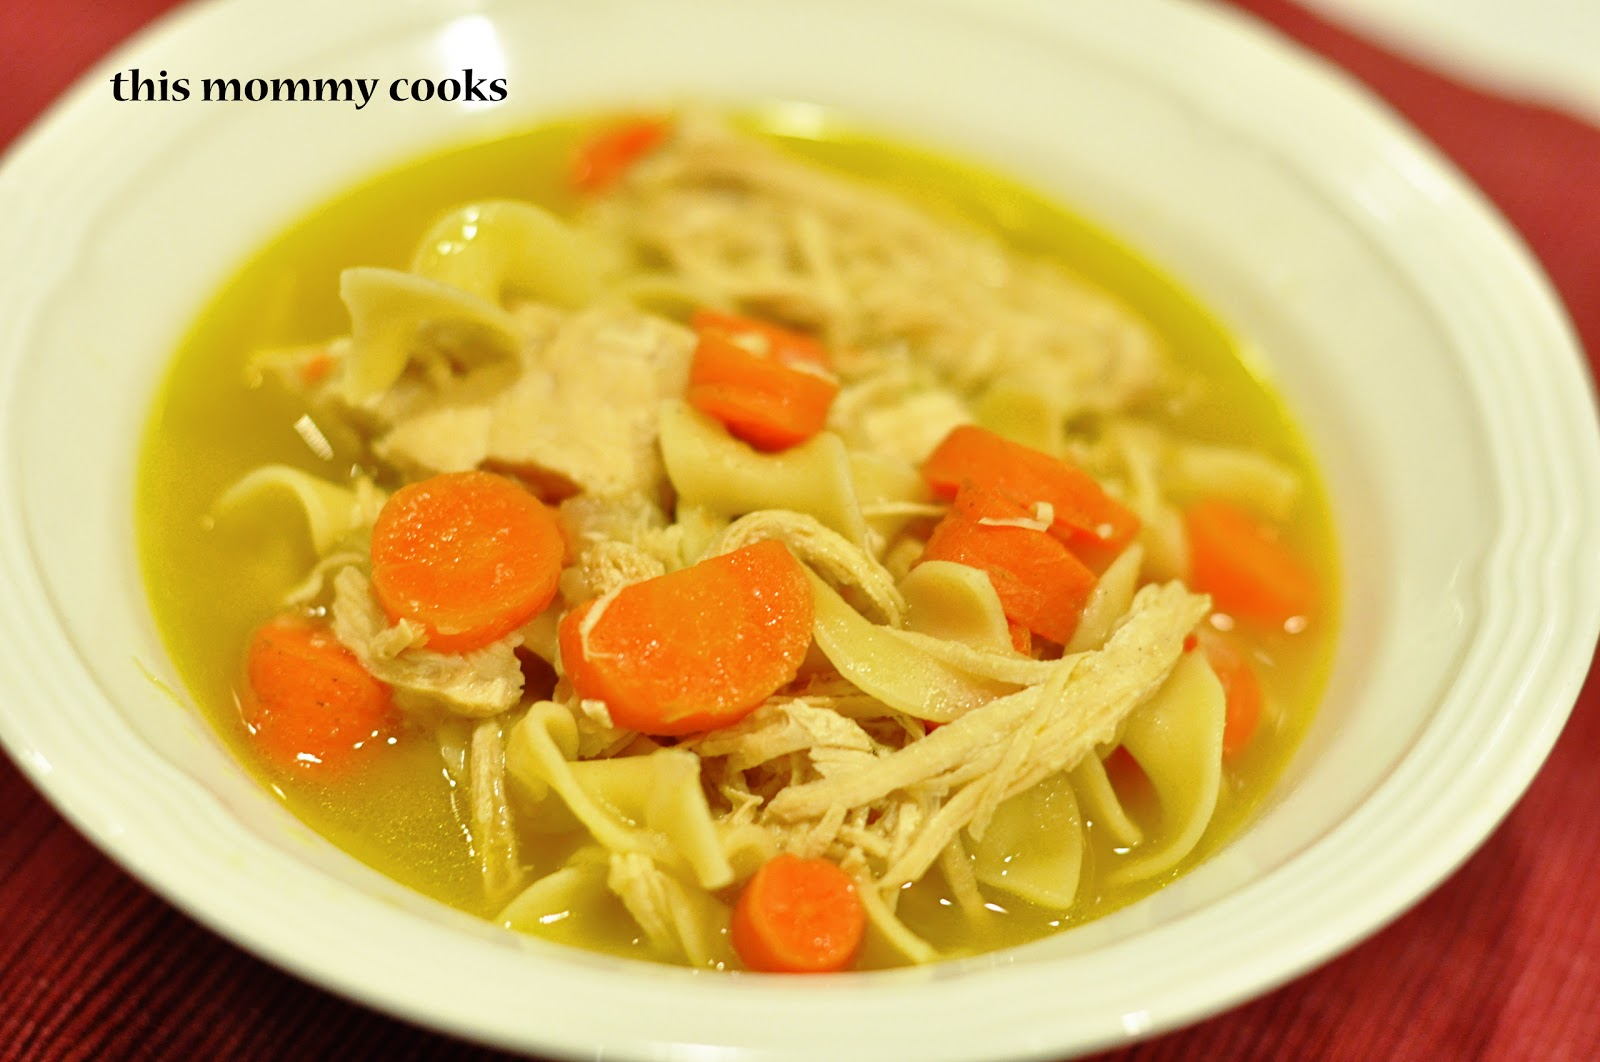 This Mommy Cooks: Homemade Chicken Noodle Soup